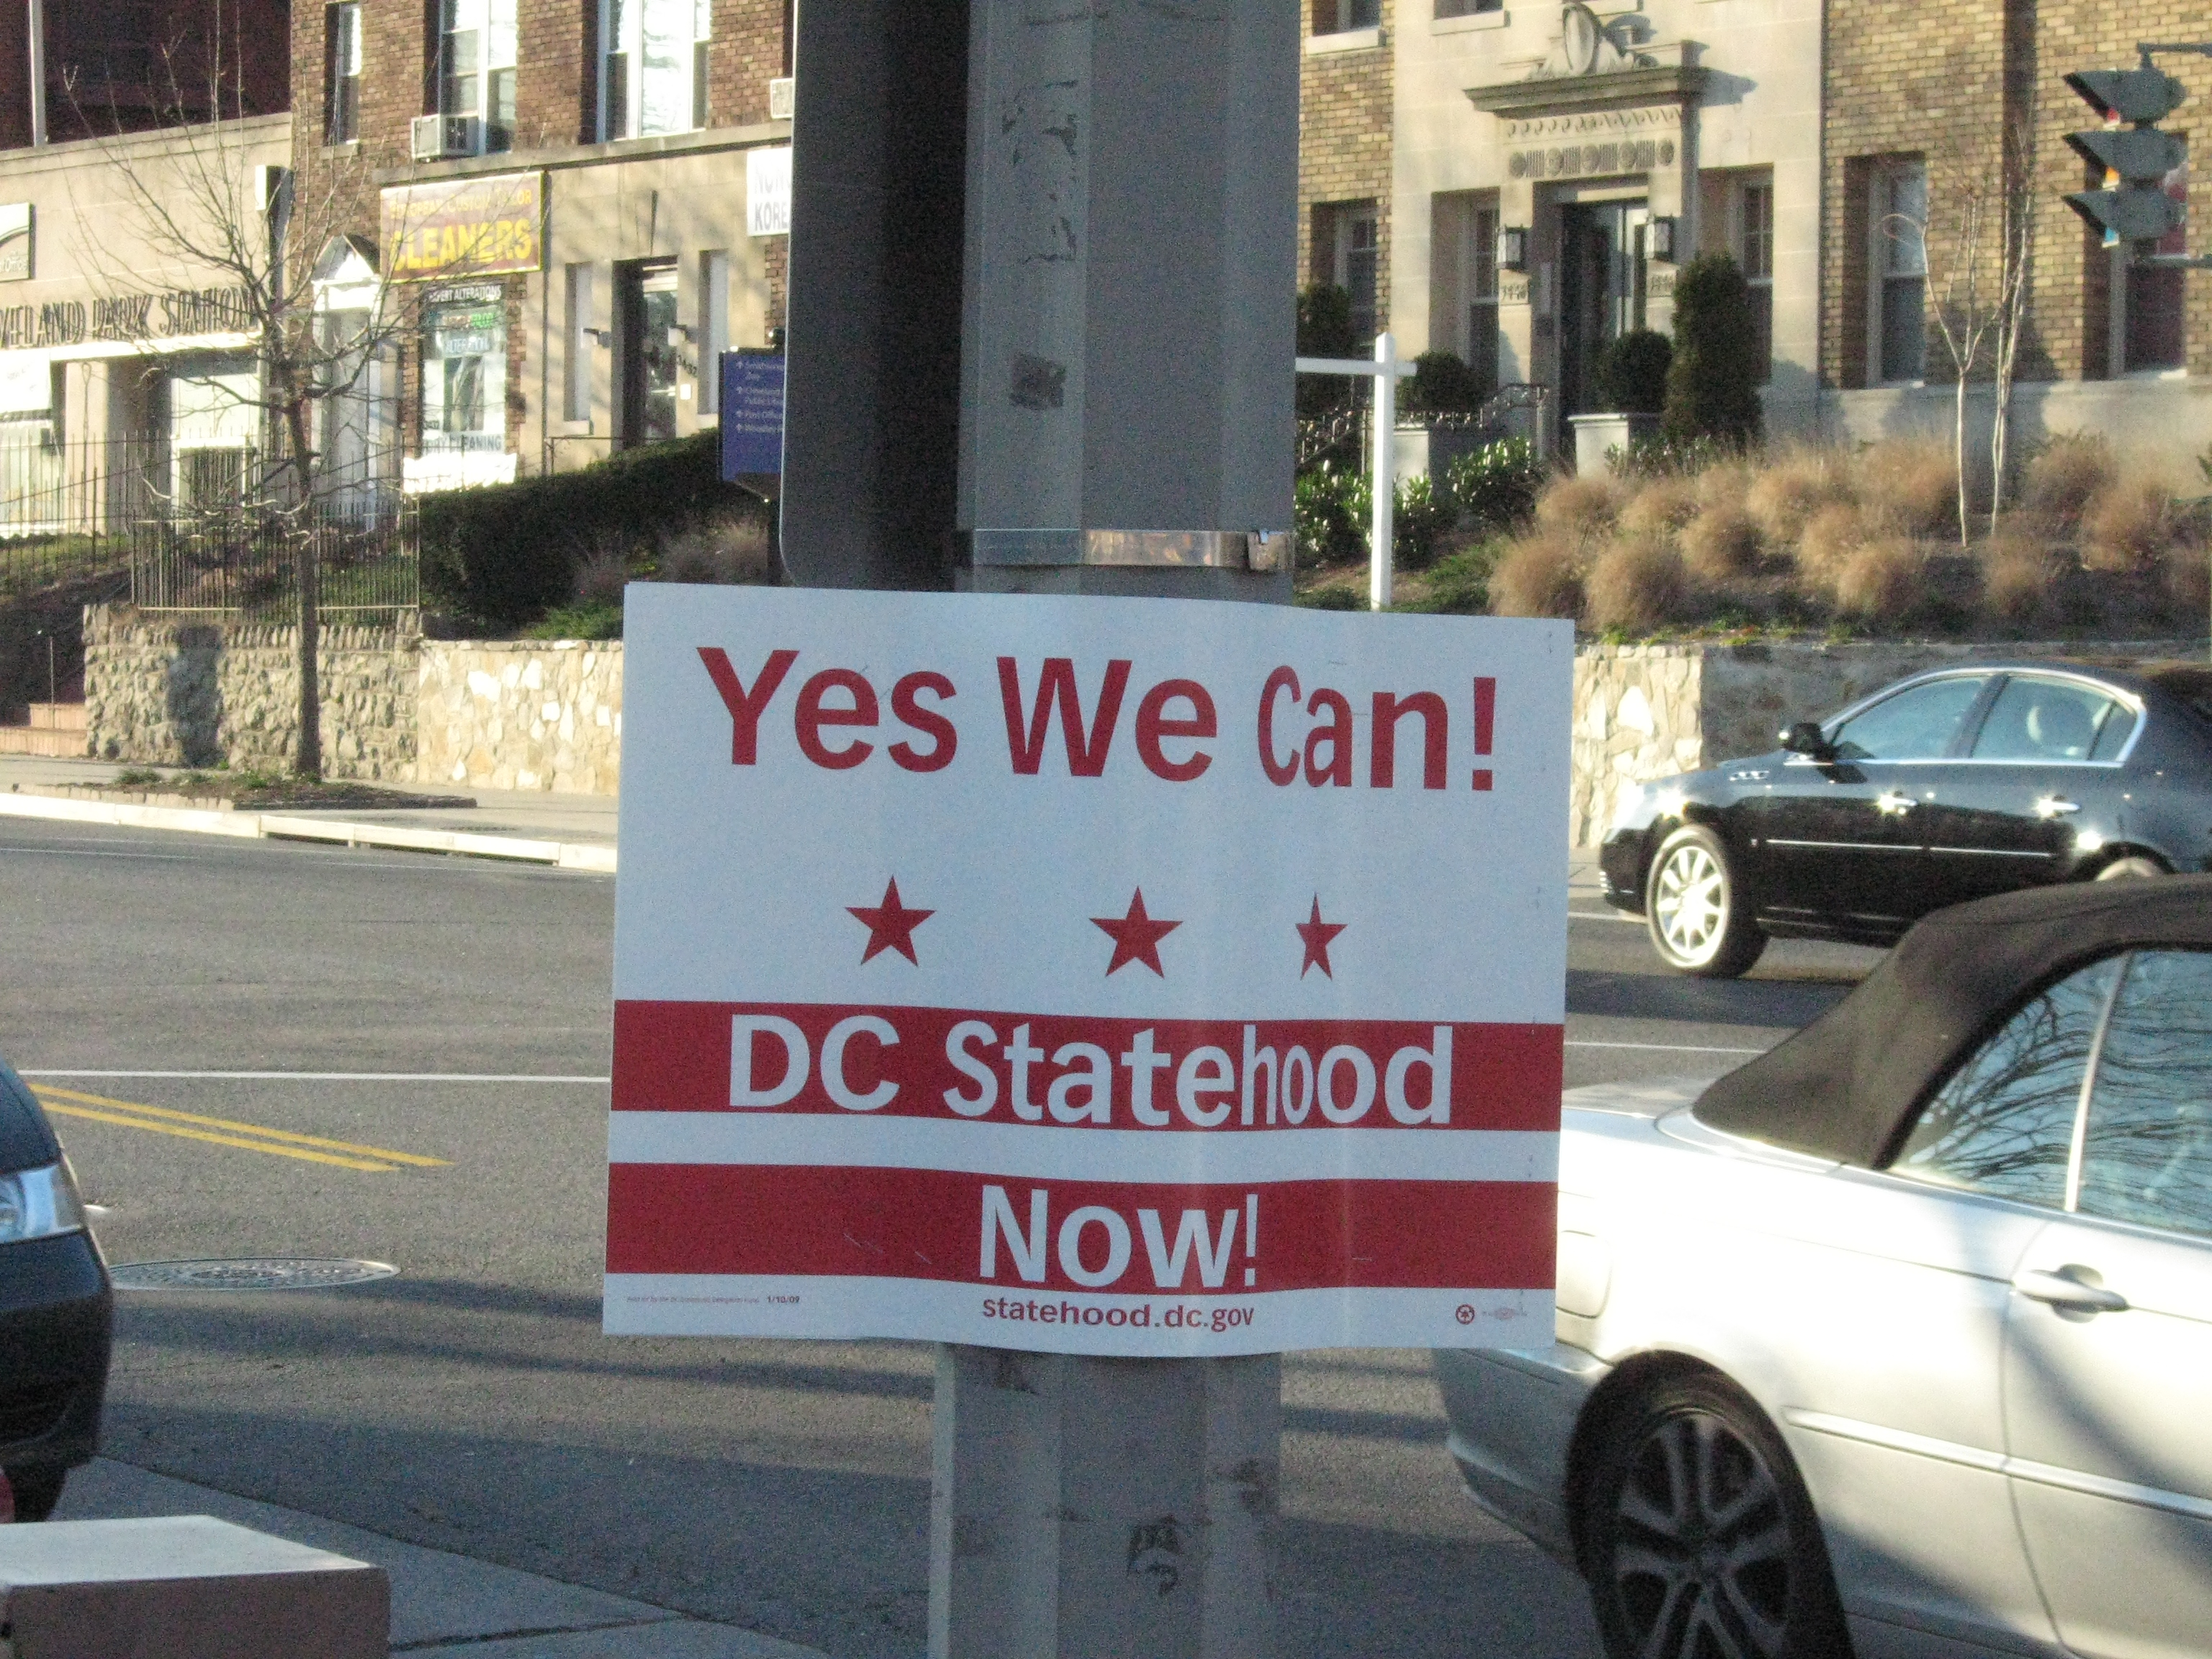 City Council fights hard for DC Statehood